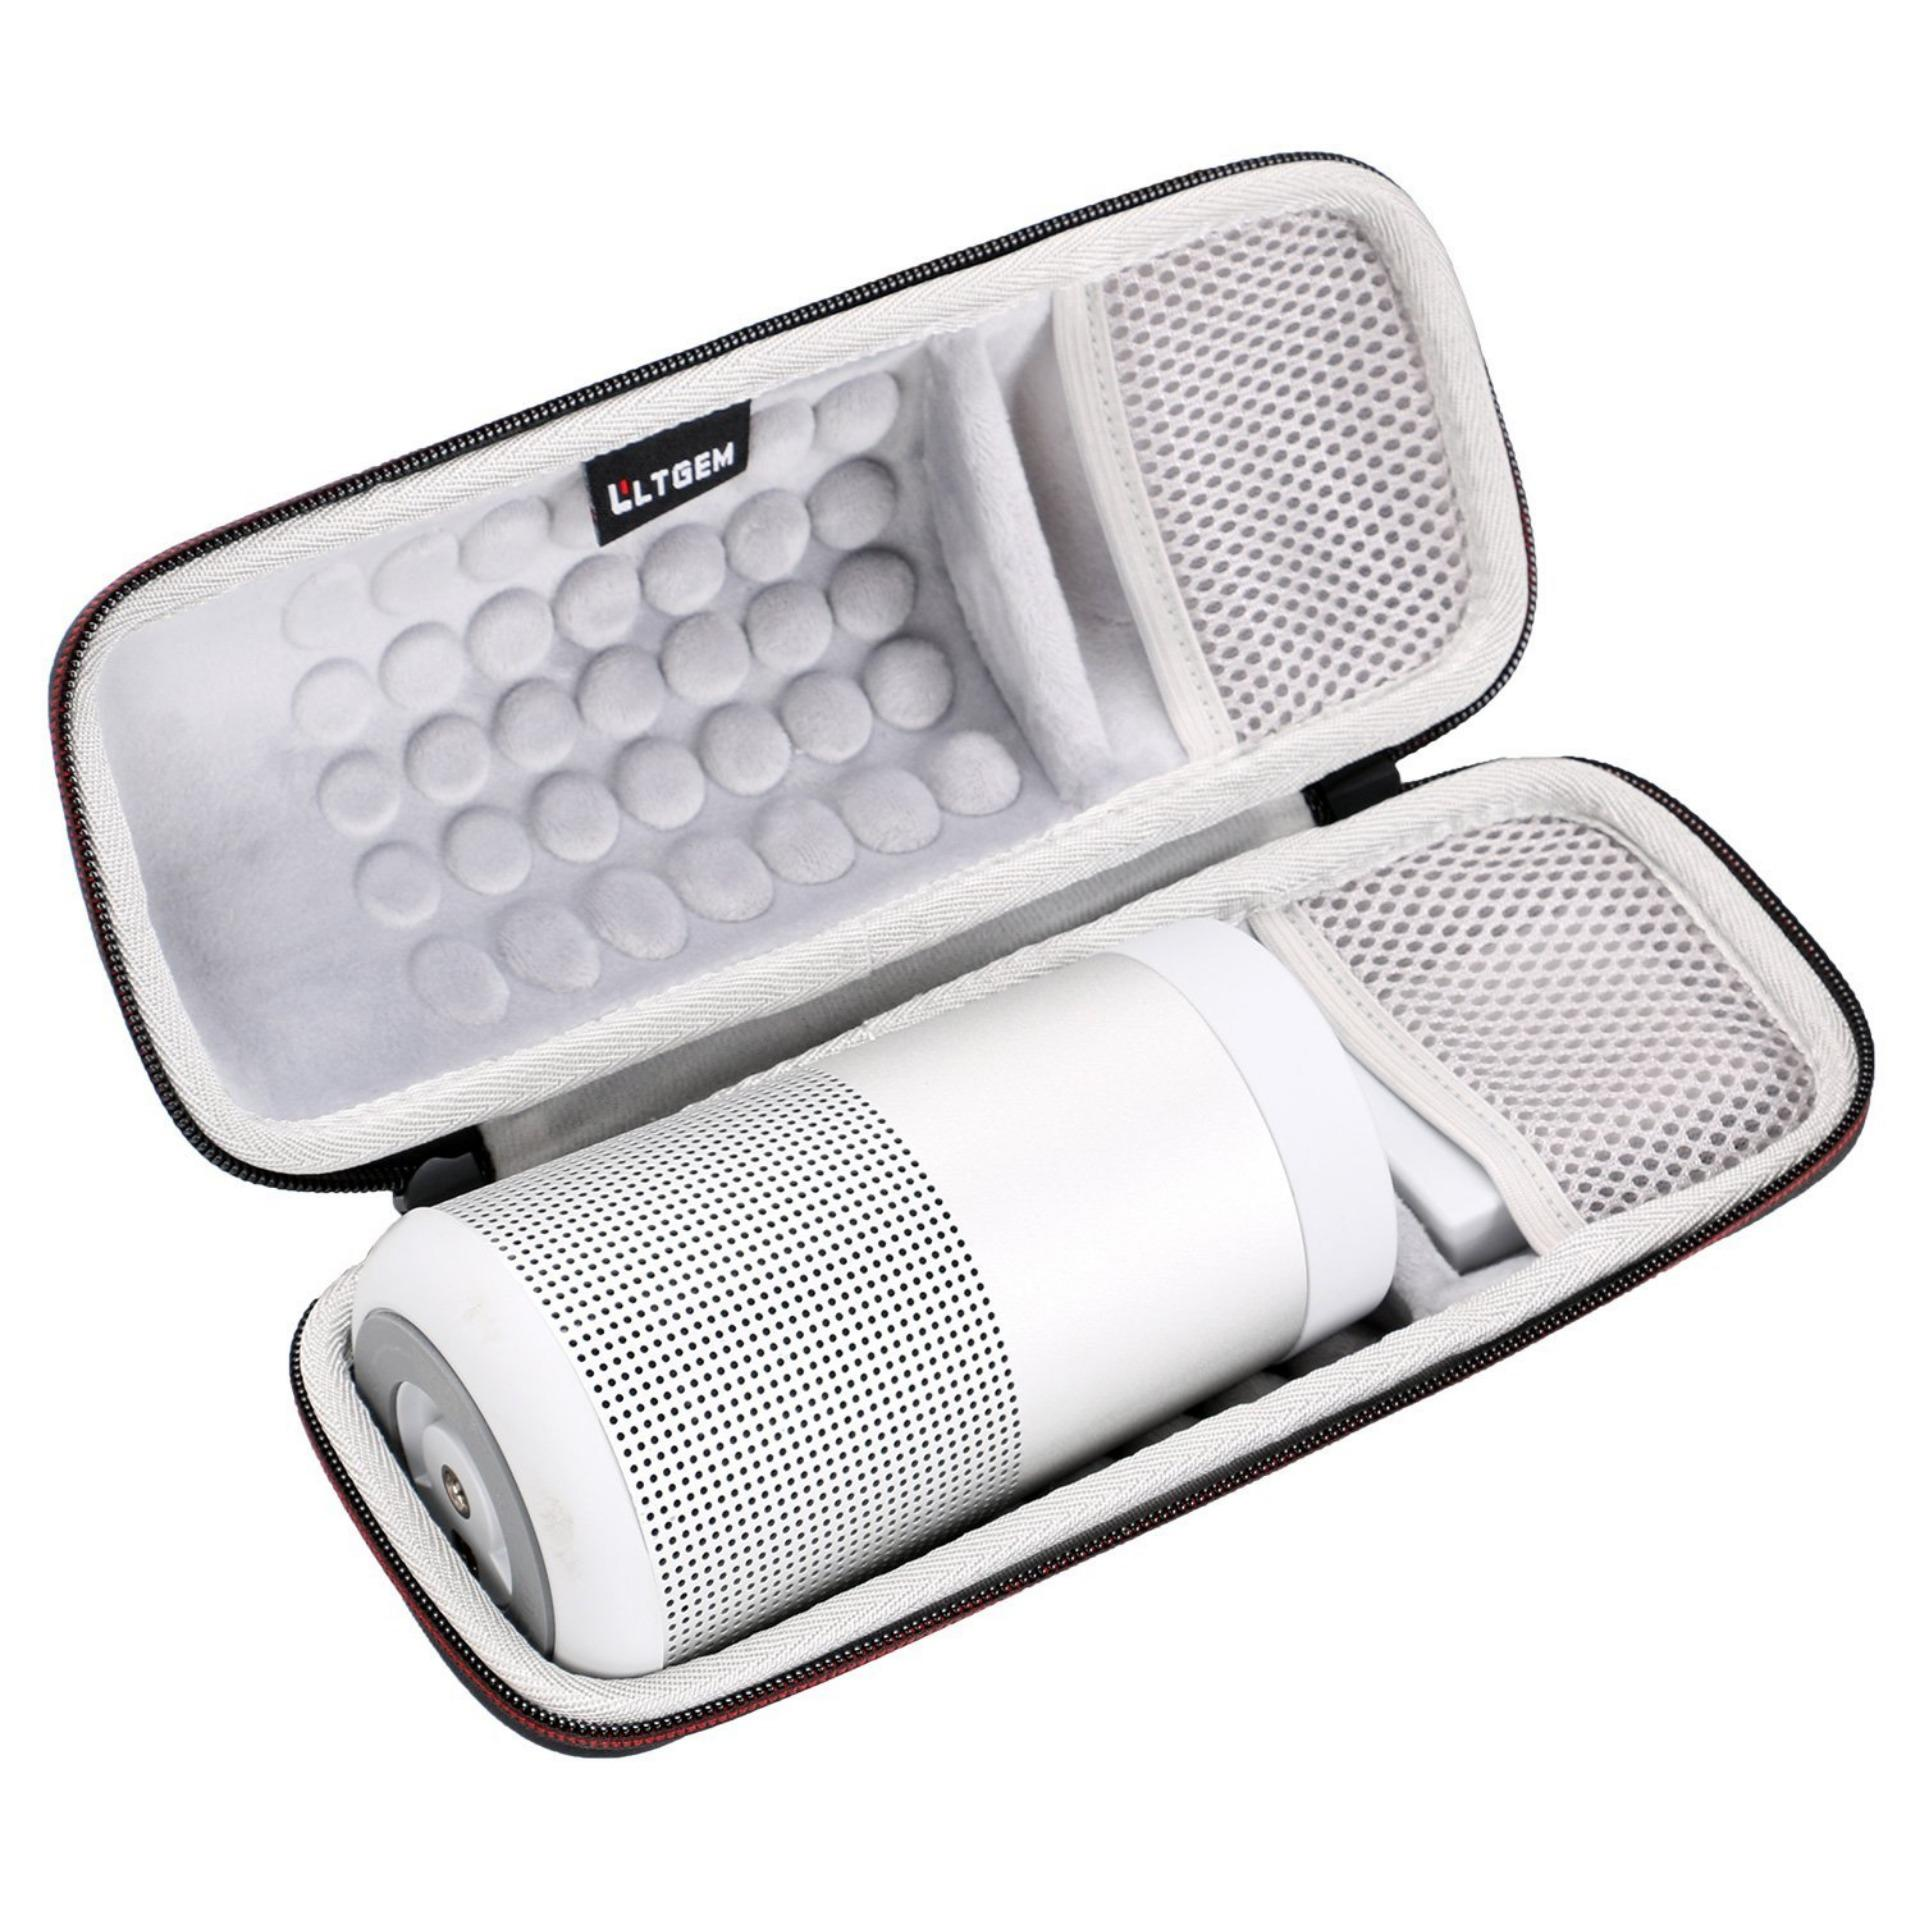 Lowest Price Ltgem Portable Hard Eva Case Protective Storage Carrying Bag Case For Revolve Bluetooth Speaker With Mesh Pocket Intl